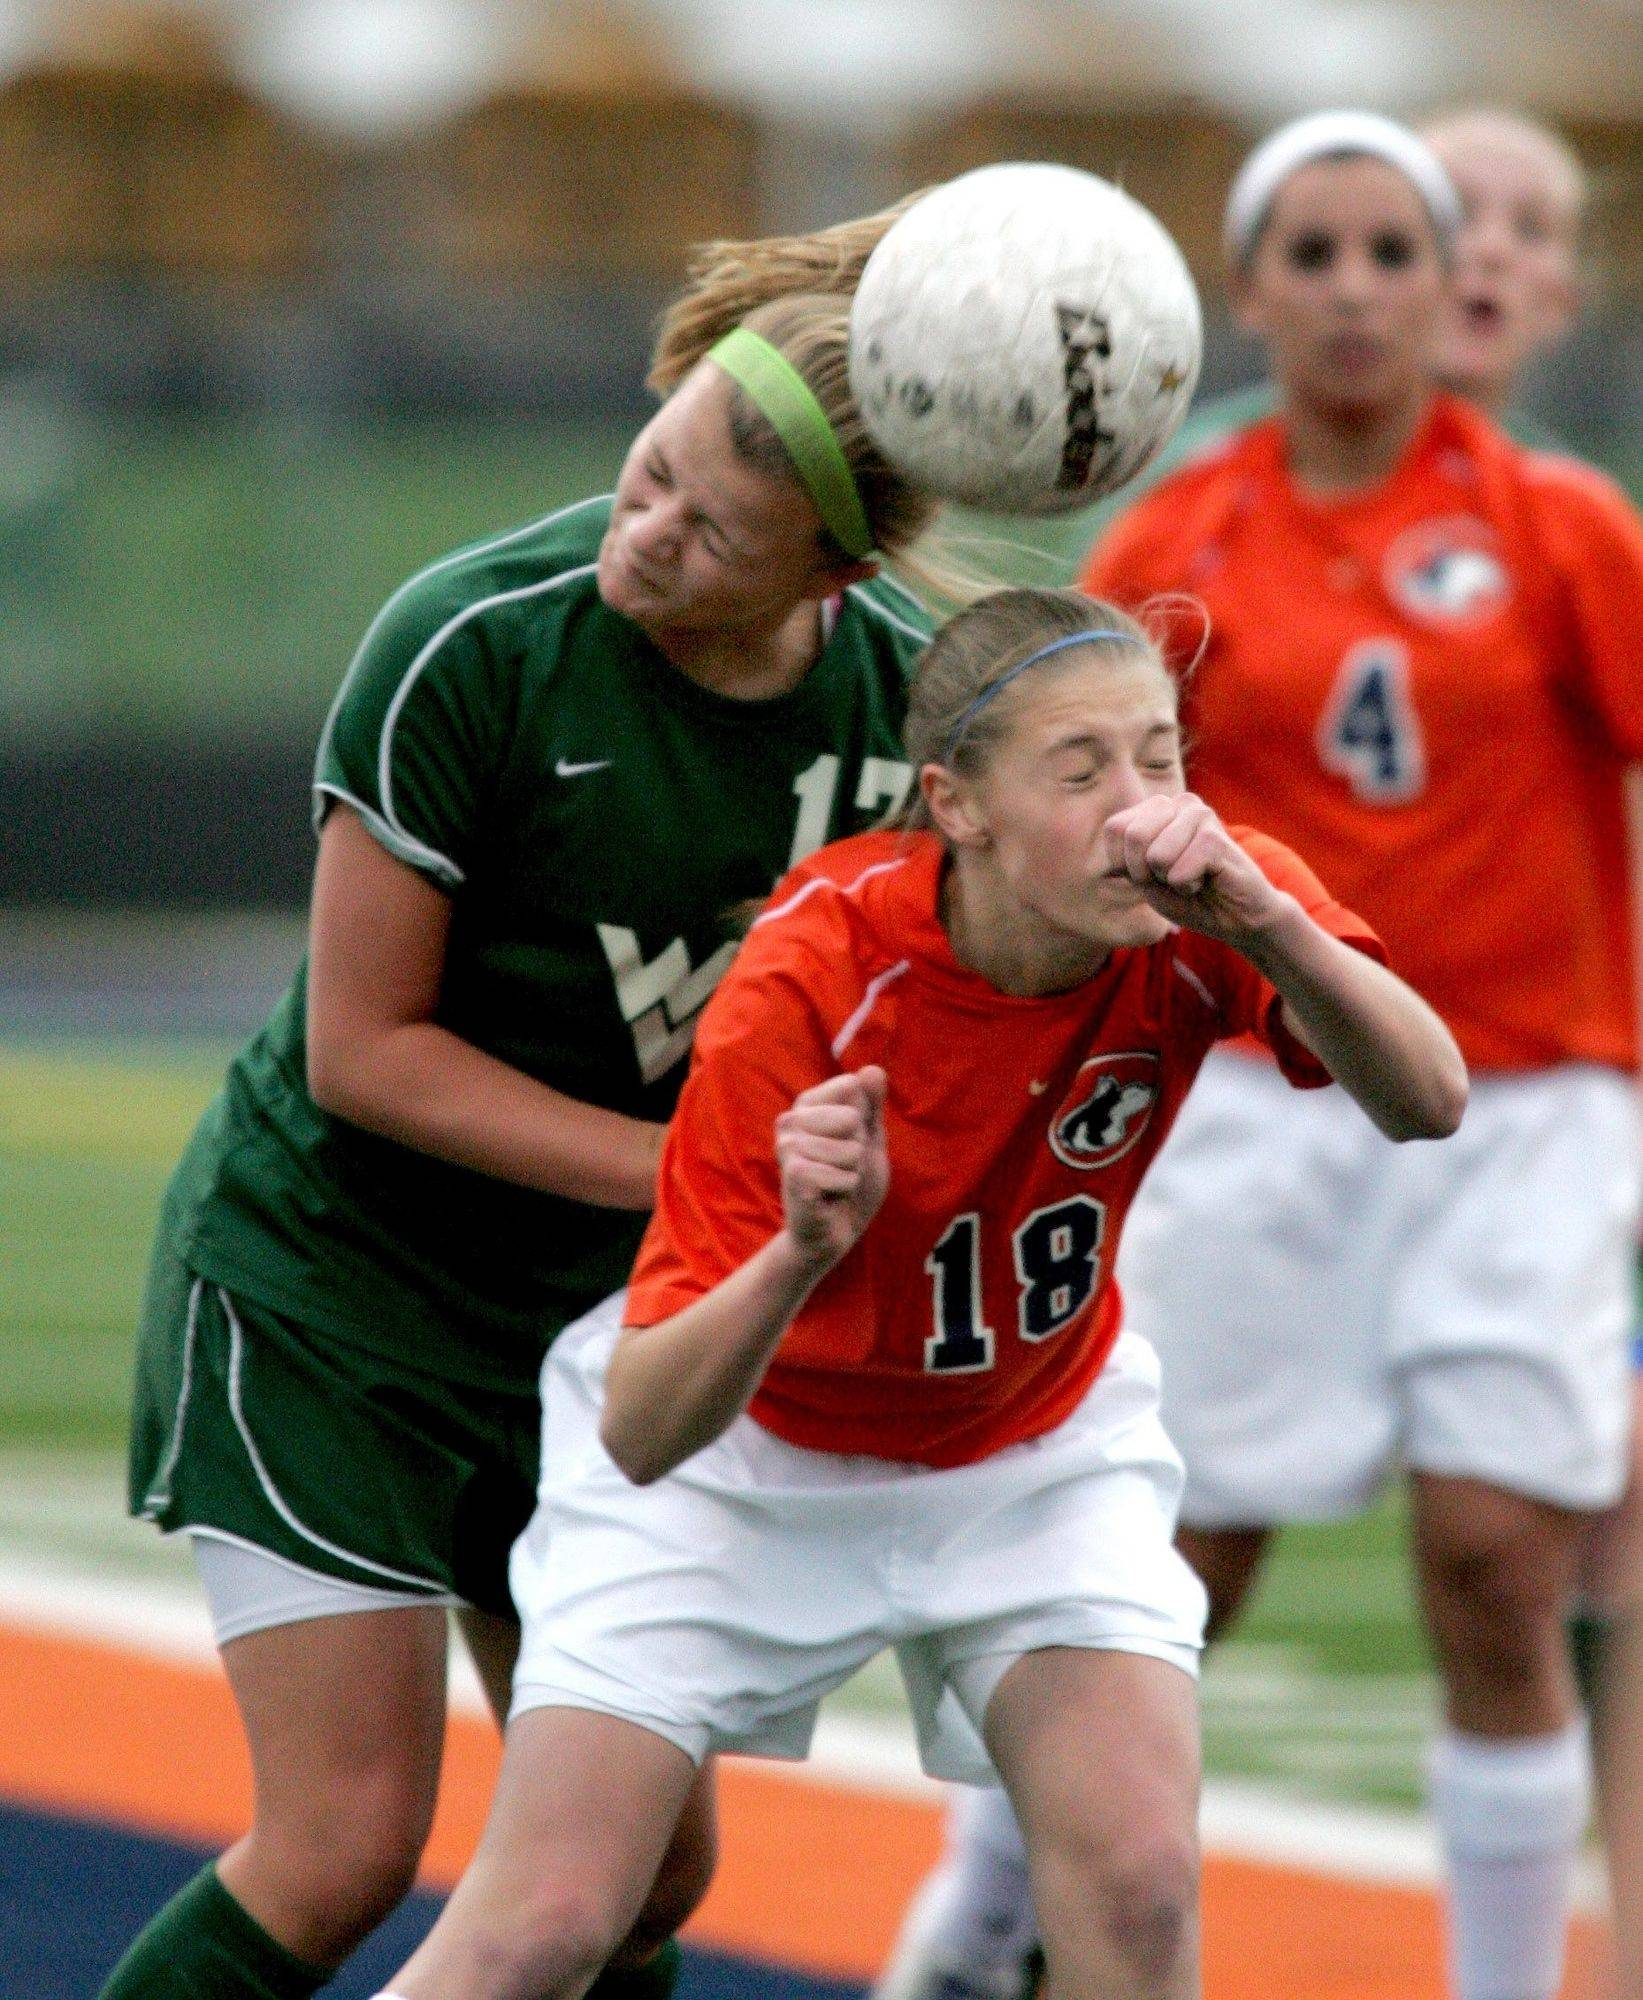 Hannah Klancic of Waubonsie Valley, left, gets the header over Angela Widlacki of Naperville North during girls soccer in Naperville on Monday.